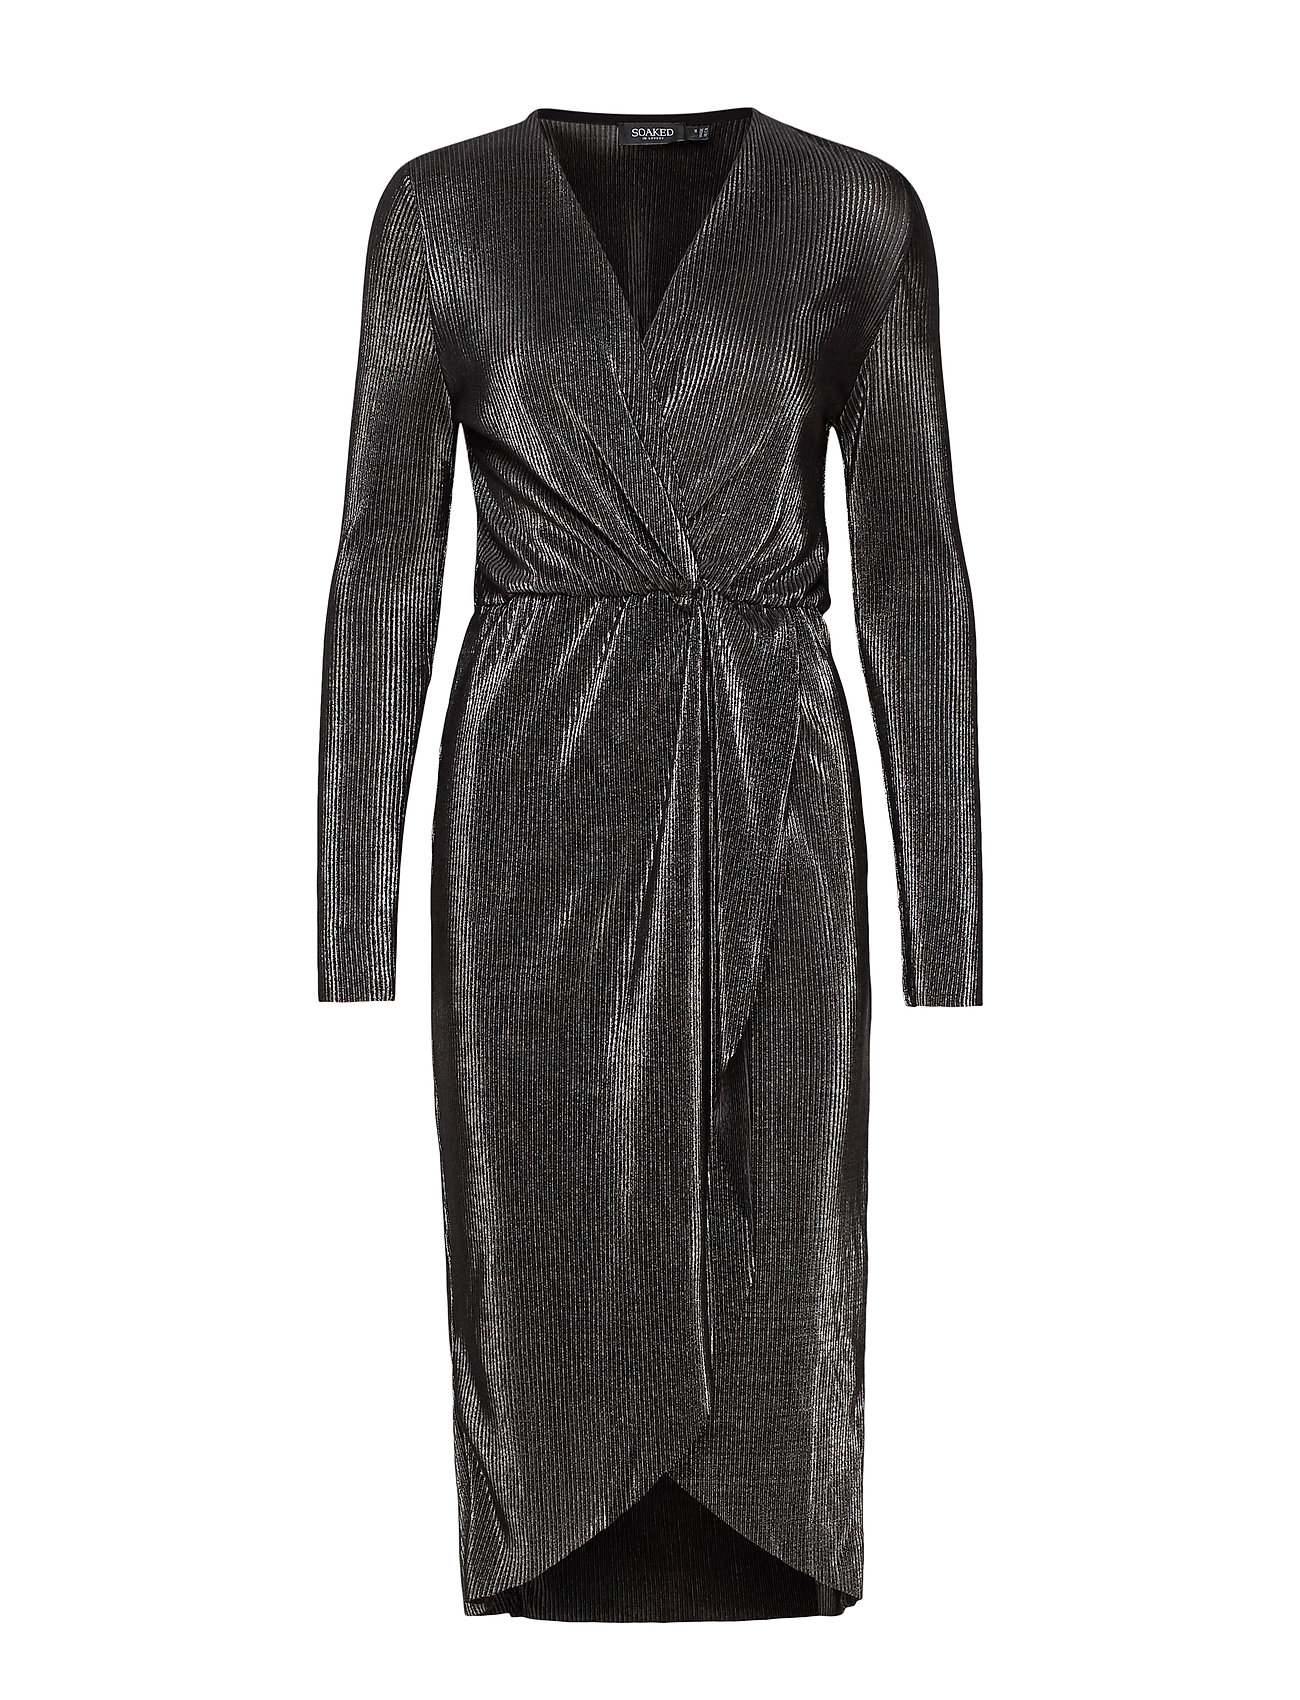 Soaked in Luxury SLRylee Dress LS - GUN METAL